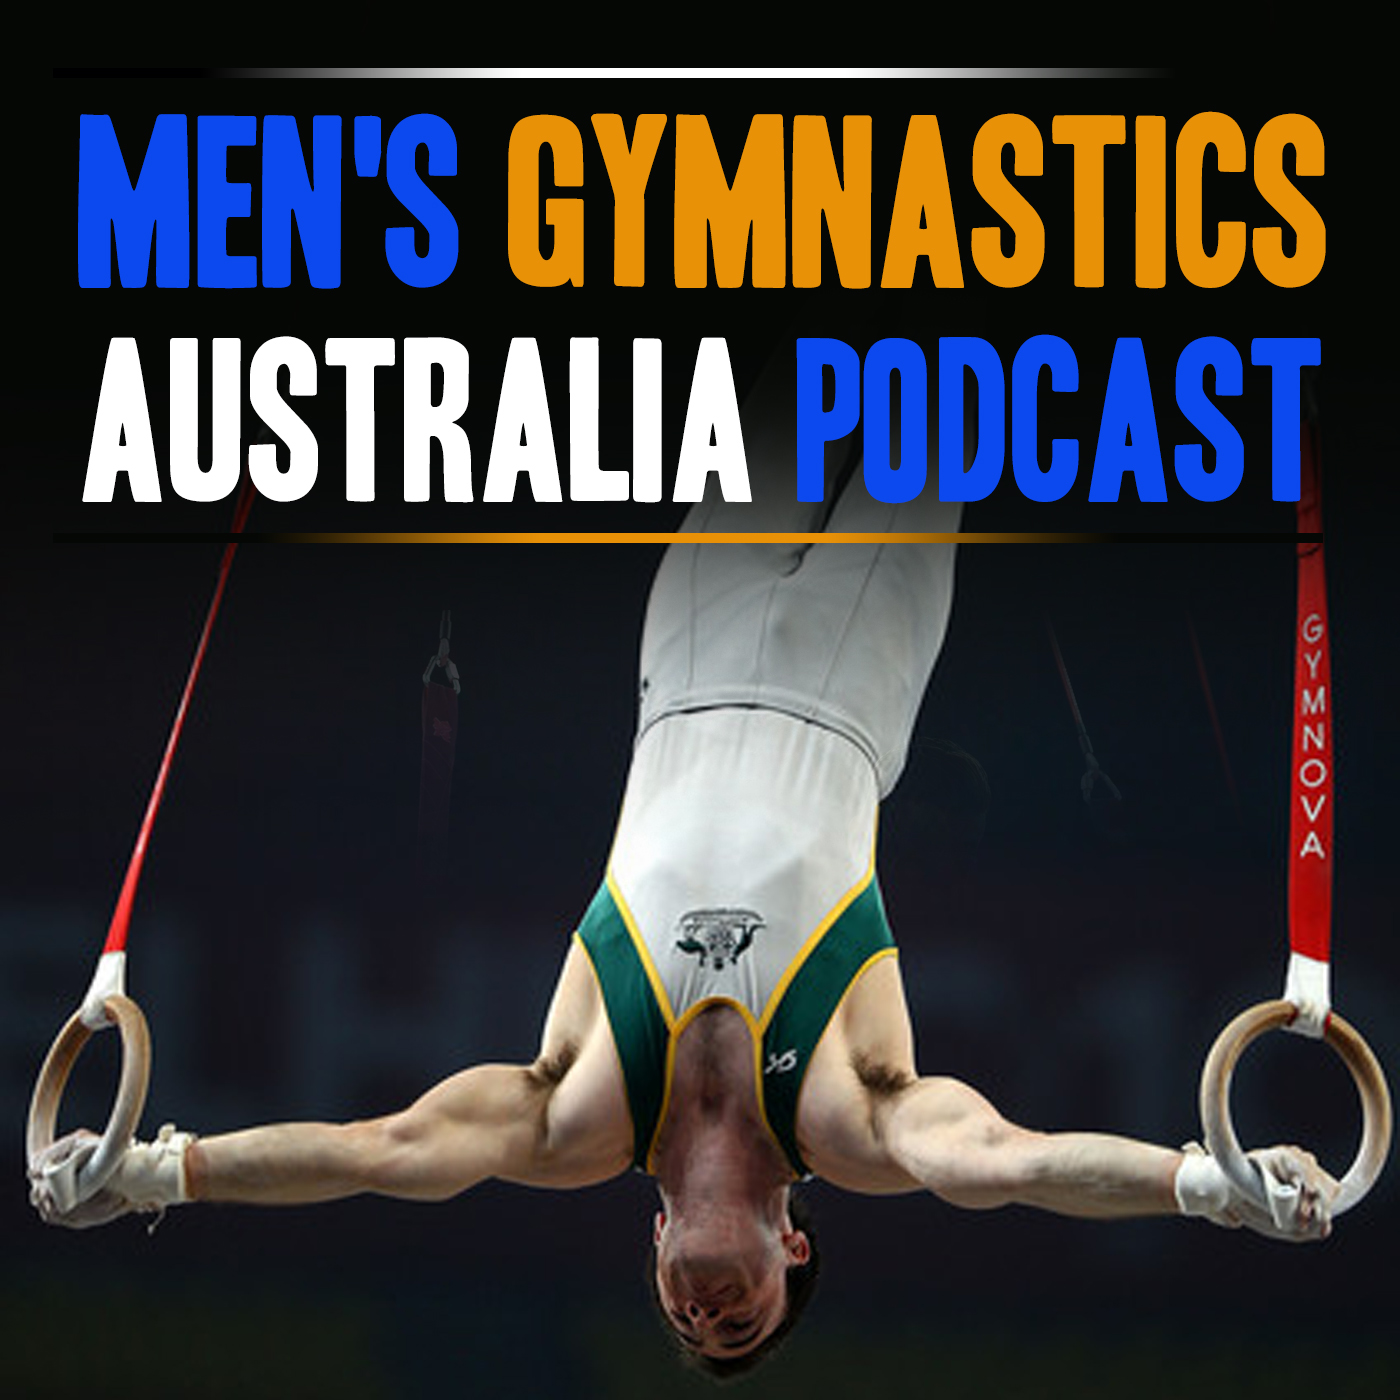 Men's Gymnastics Australia Podcast